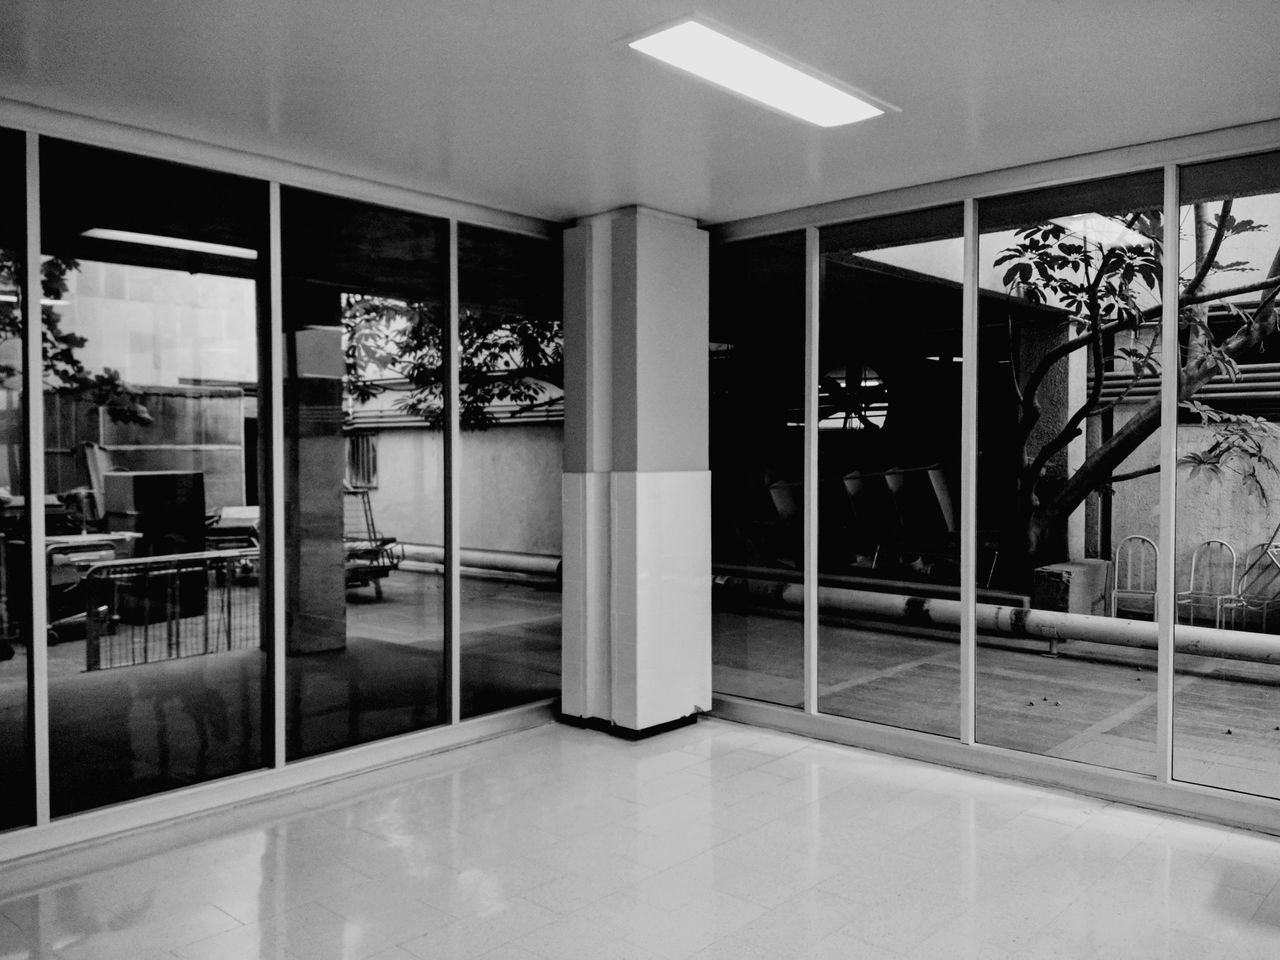 entrance, indoors, reflection, store, tiled floor, no people, architecture, luxury, home showcase interior, open door, modern, day